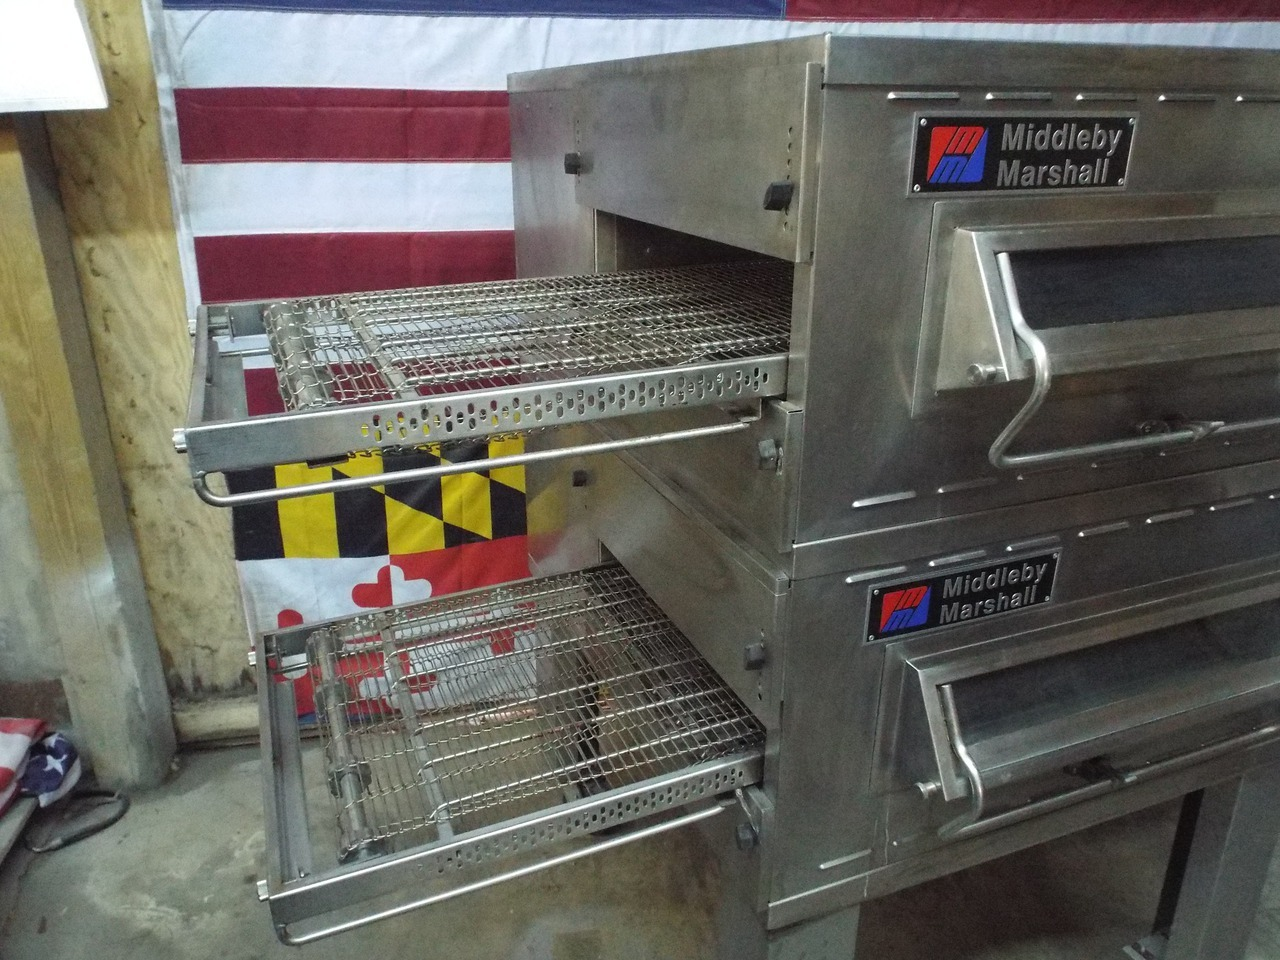 SOLD Middleby Marshall PS536 Double Deck Conveyor Ovens